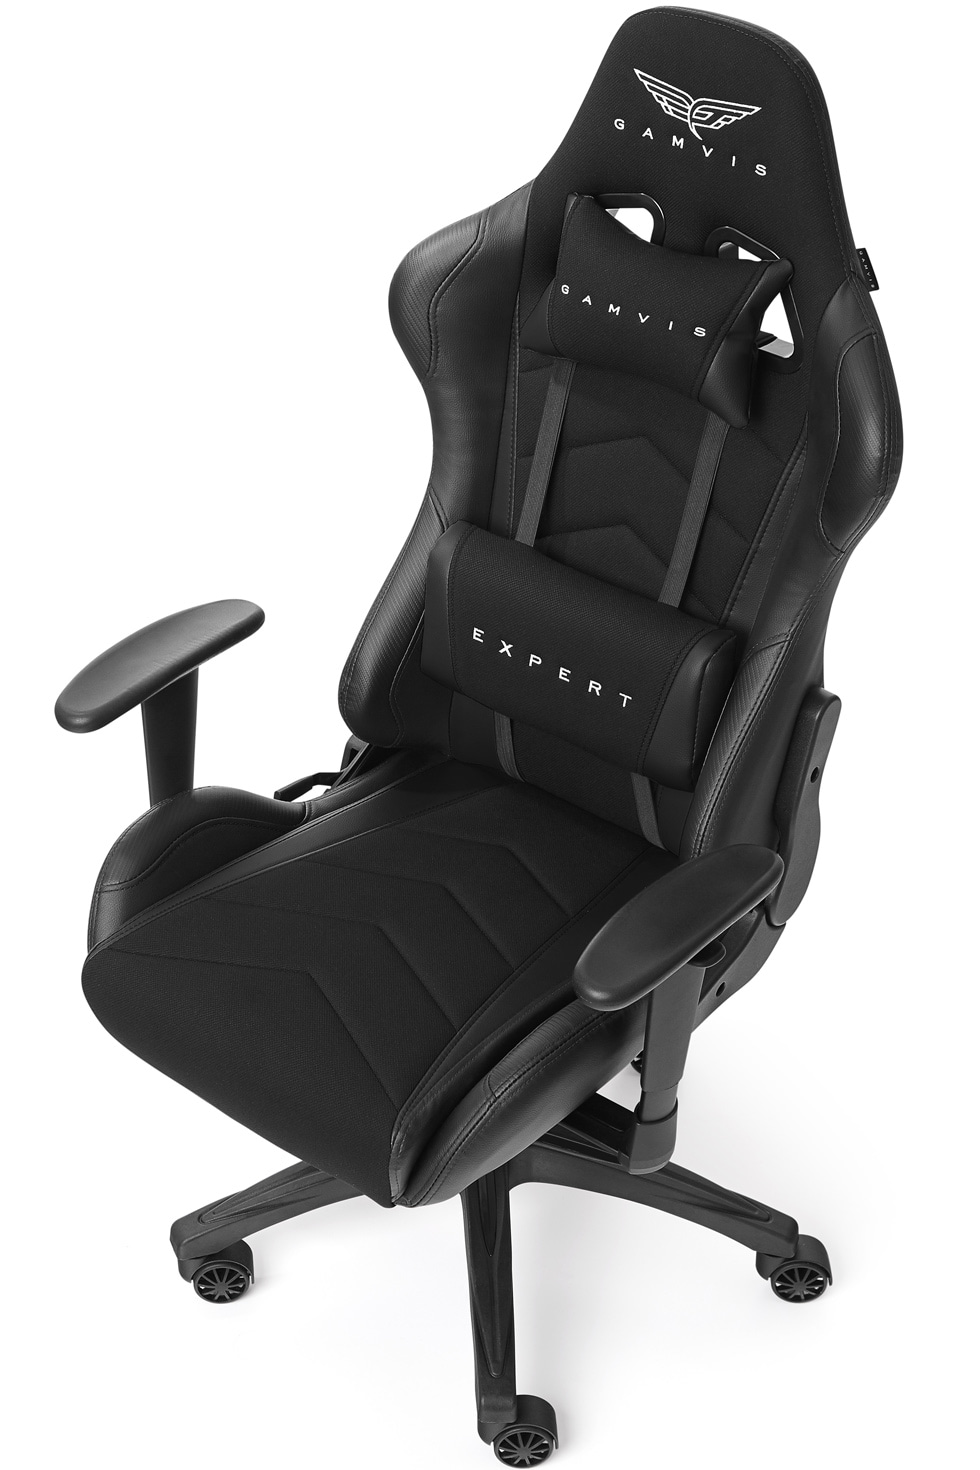 Gamvis EXPERT Fabric Gaming Chair - Black